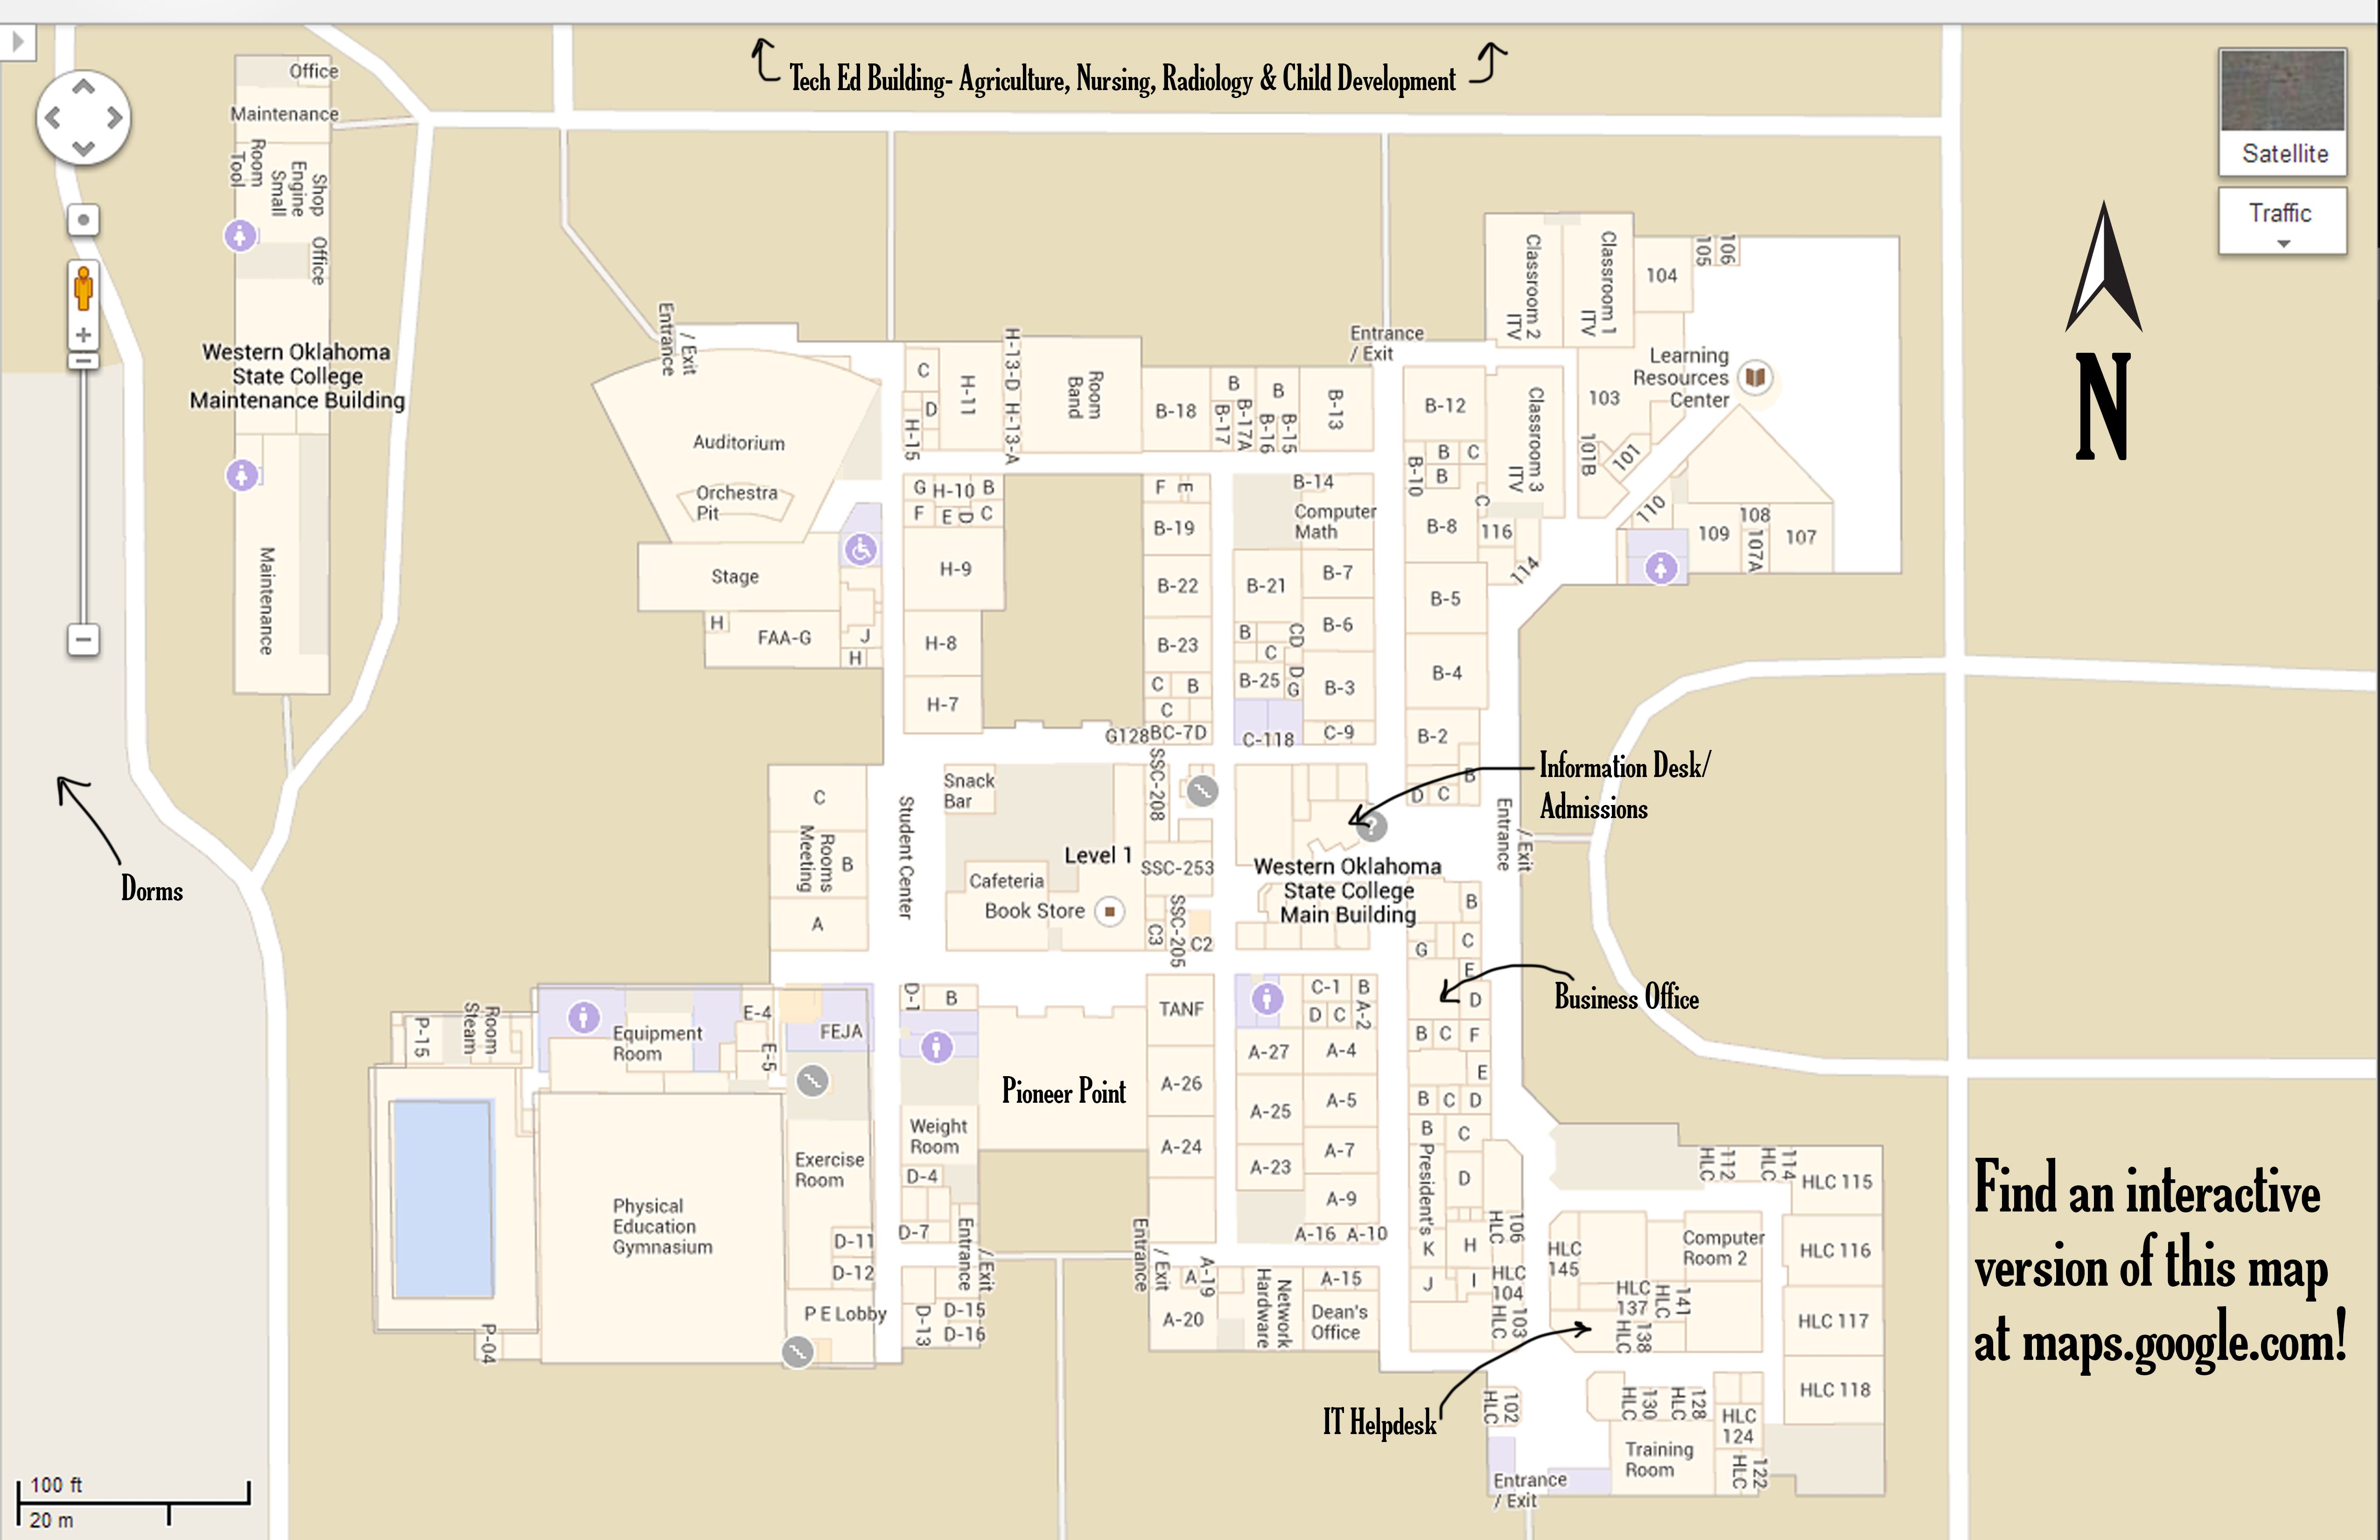 Western Oklahoma State College Campus Map Click On The